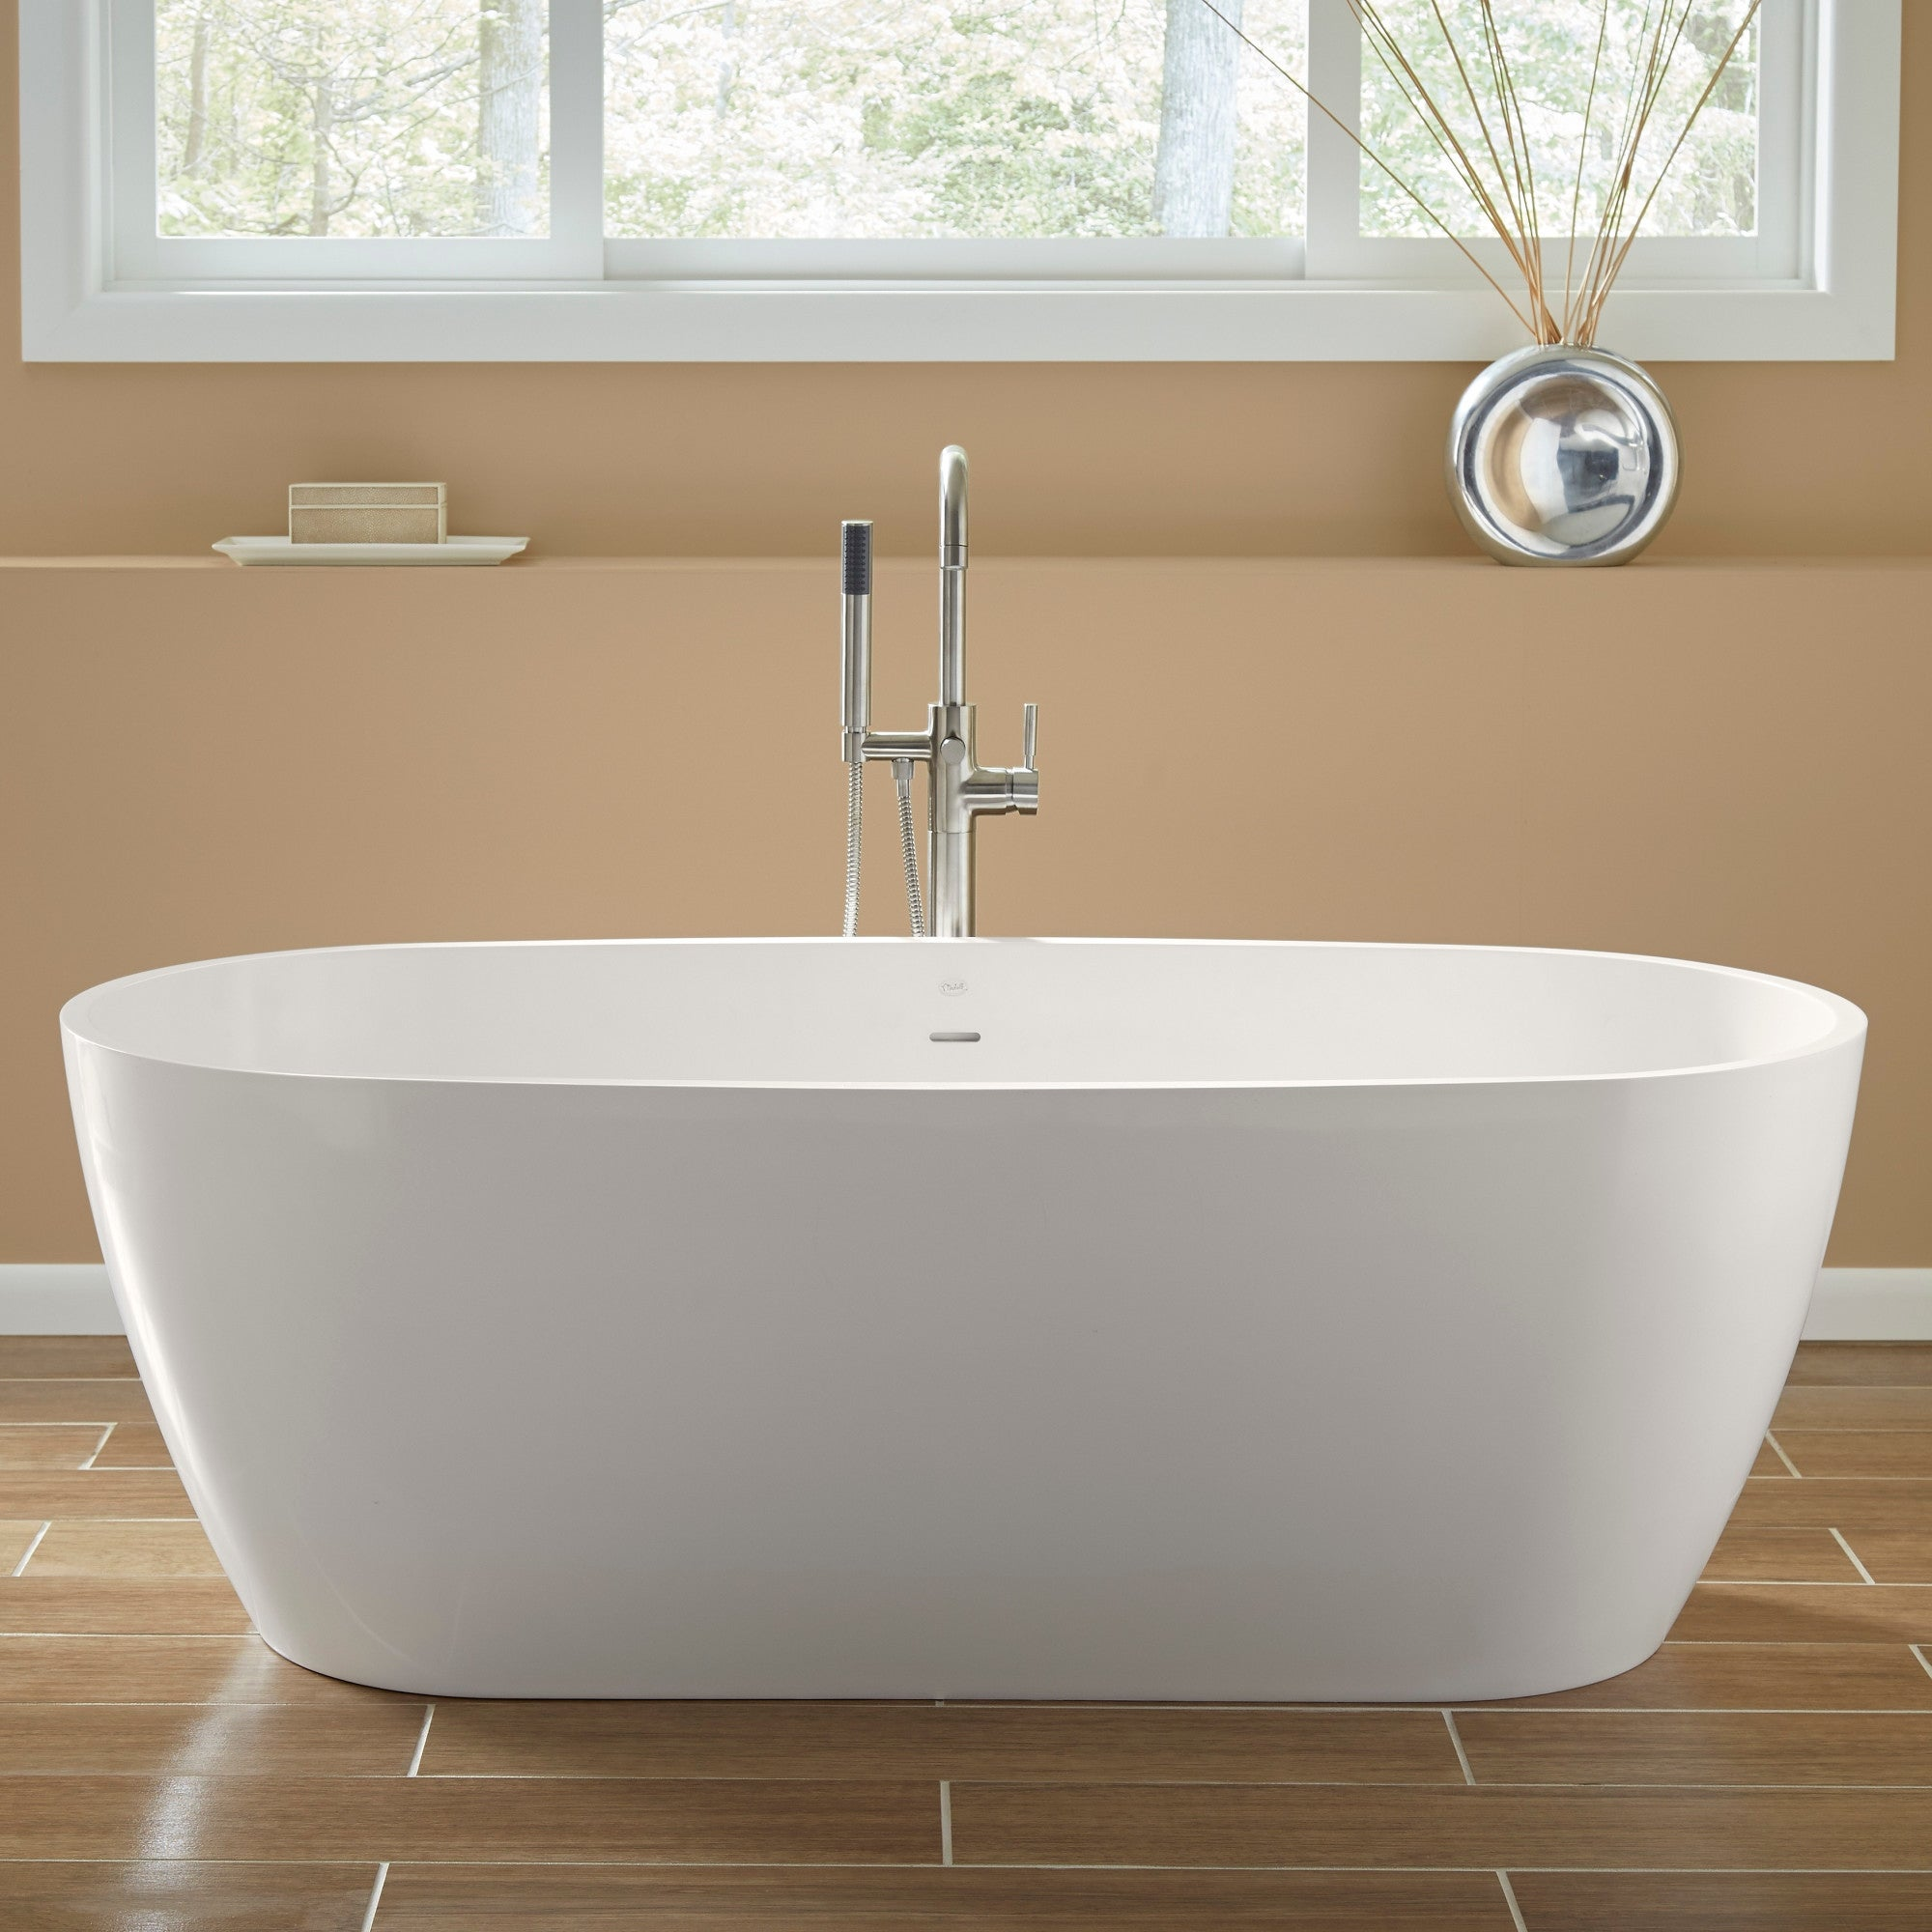 Shop Mirabelle Mirocfs6632 Ocala 66in Free Standing Soaking Tub With